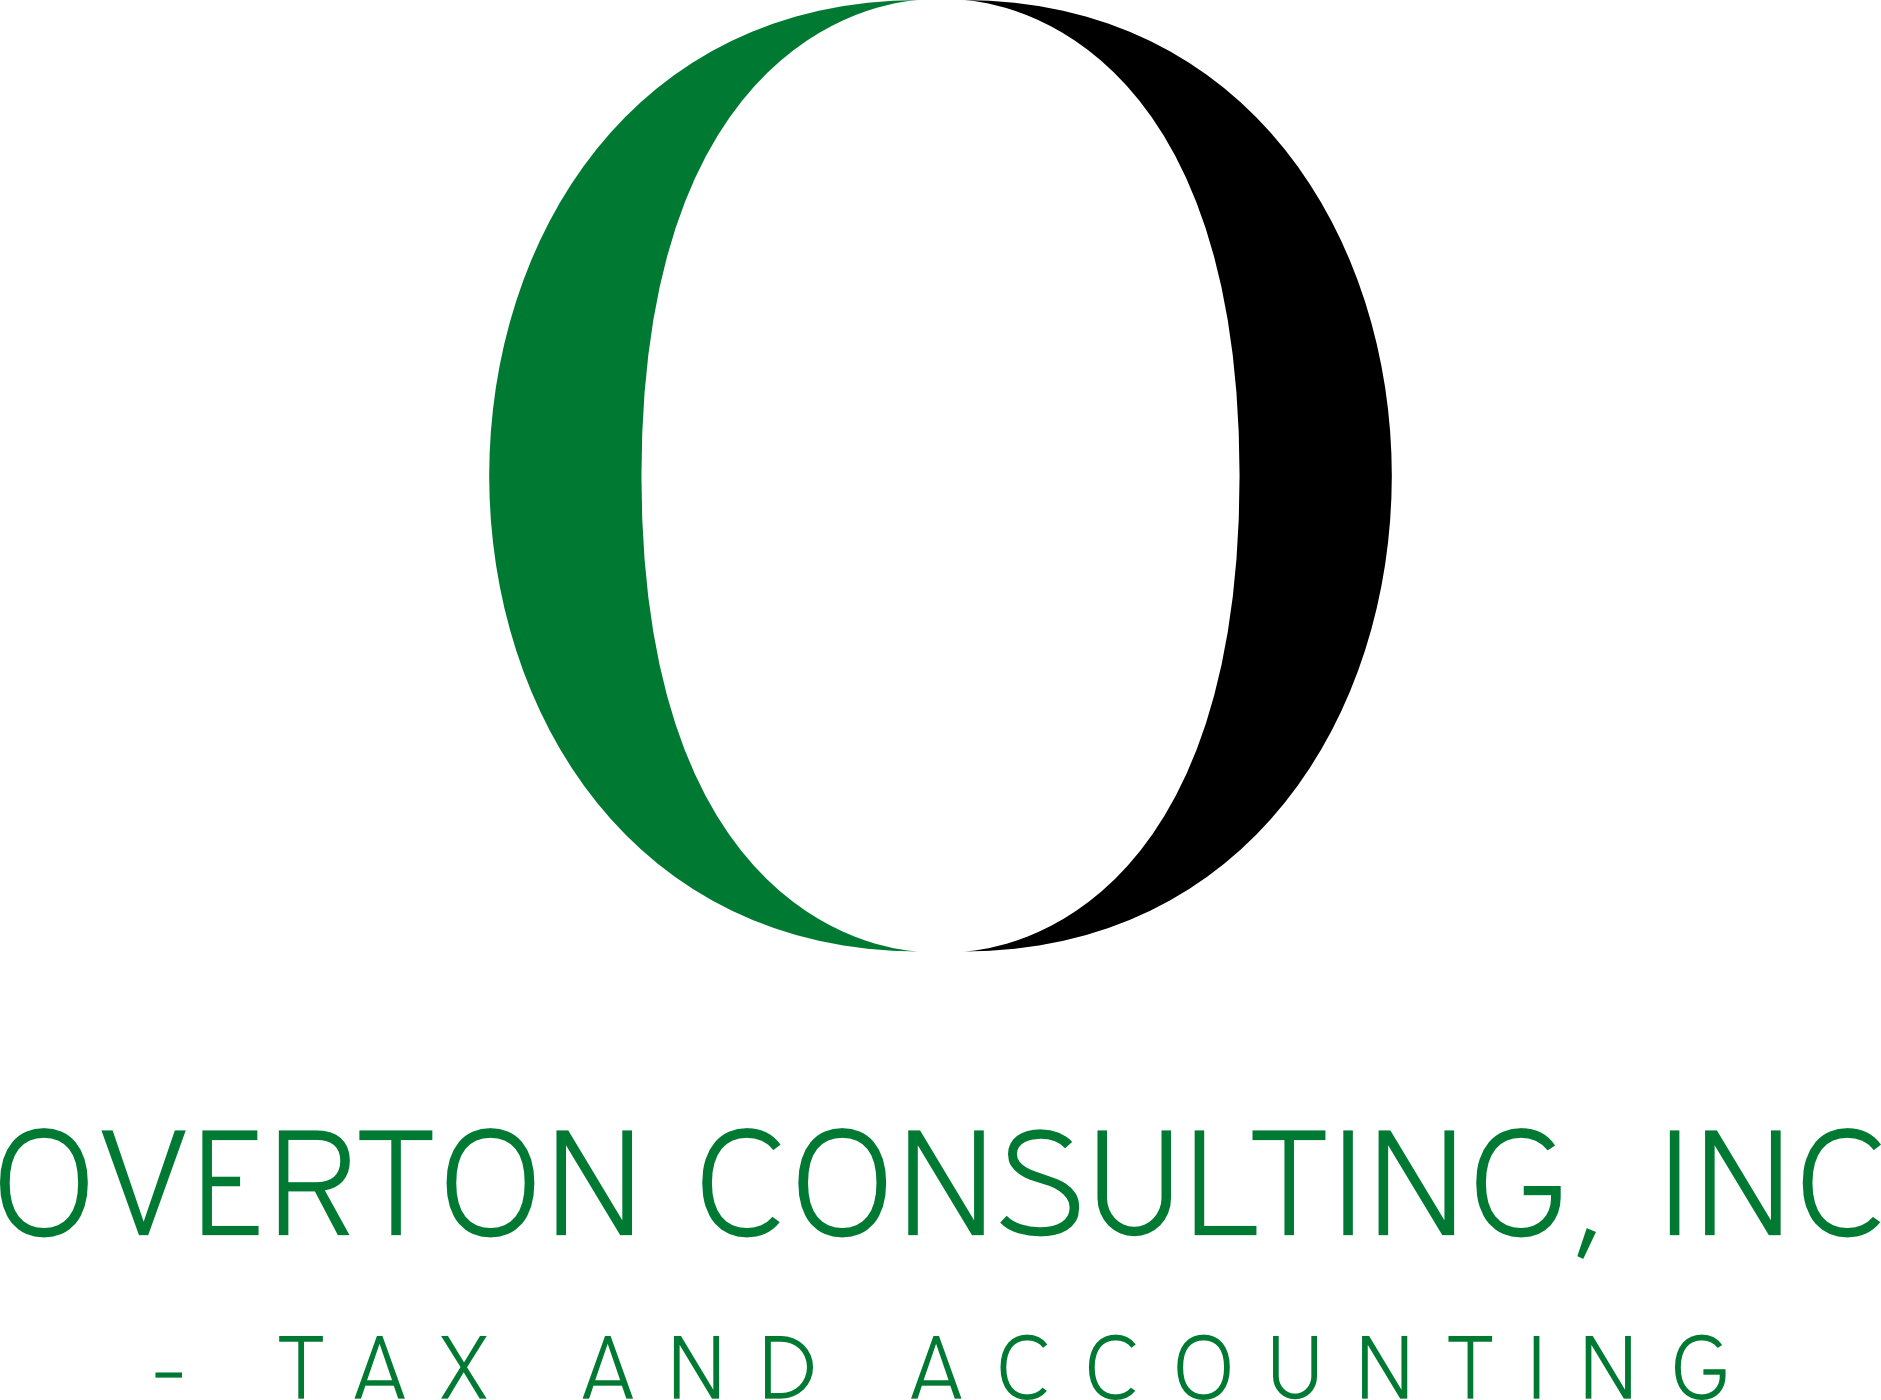 Overton Consulting INC